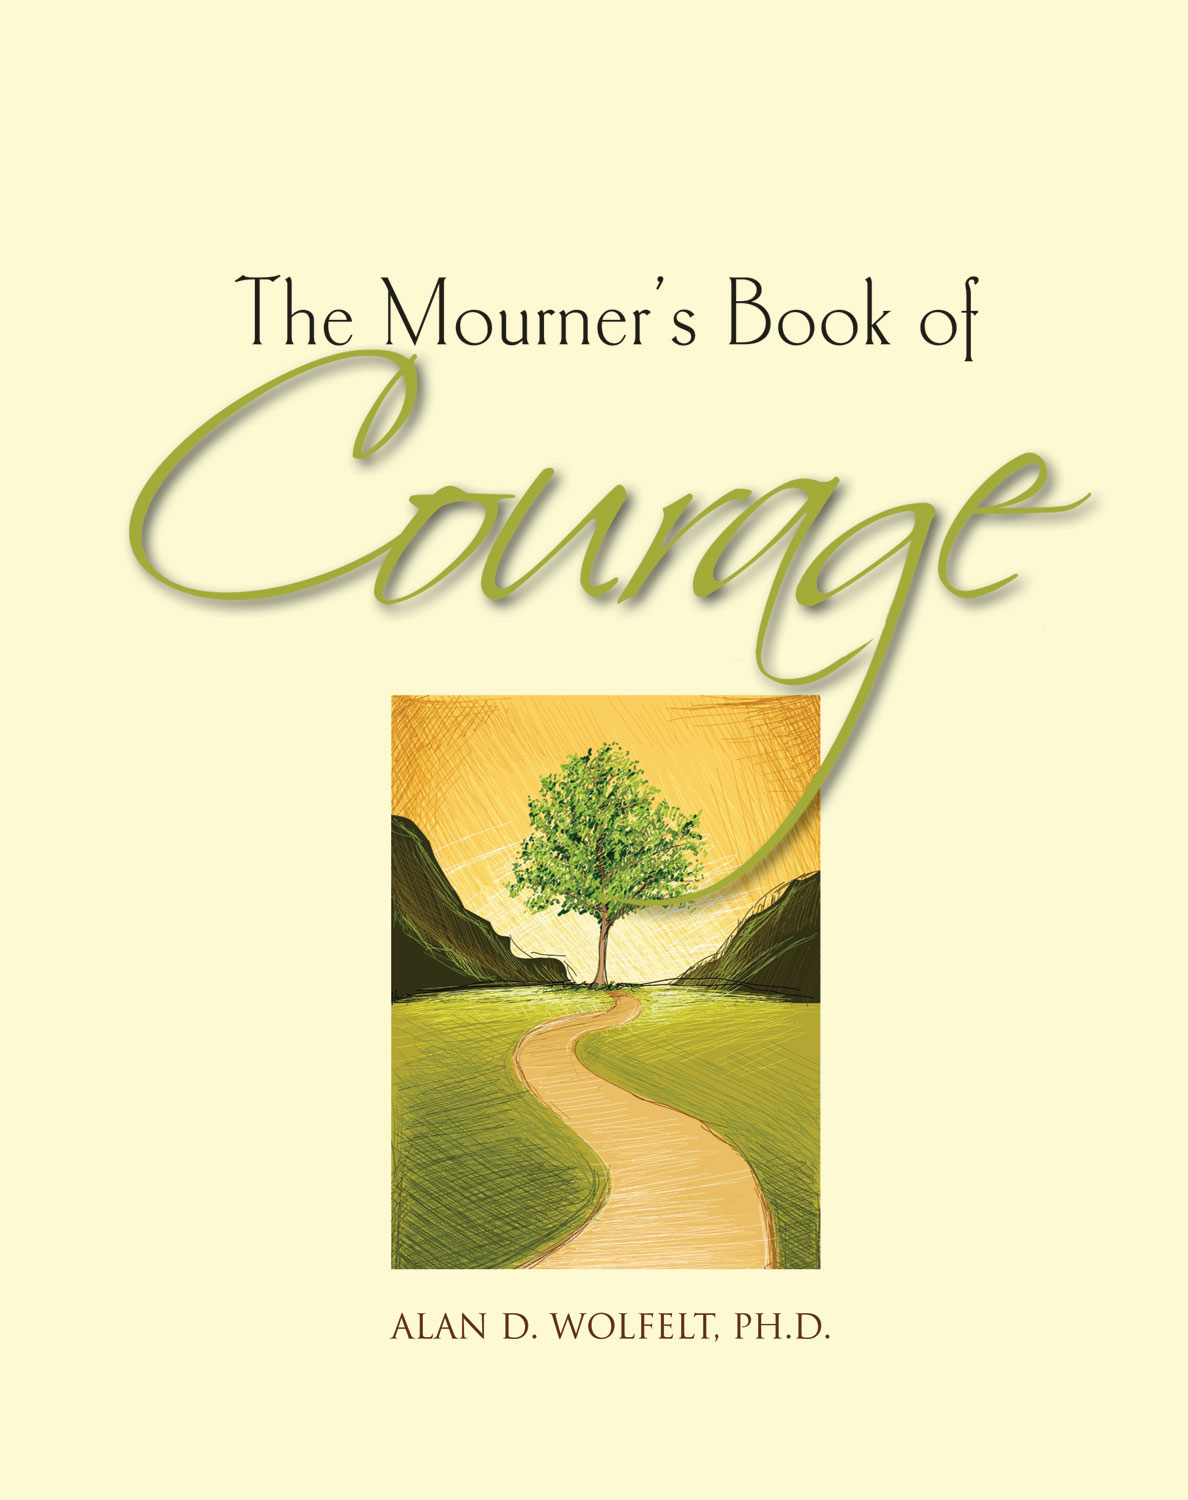 The Mourner's Book of Courage By: Alan D. Wolfelt, PhD